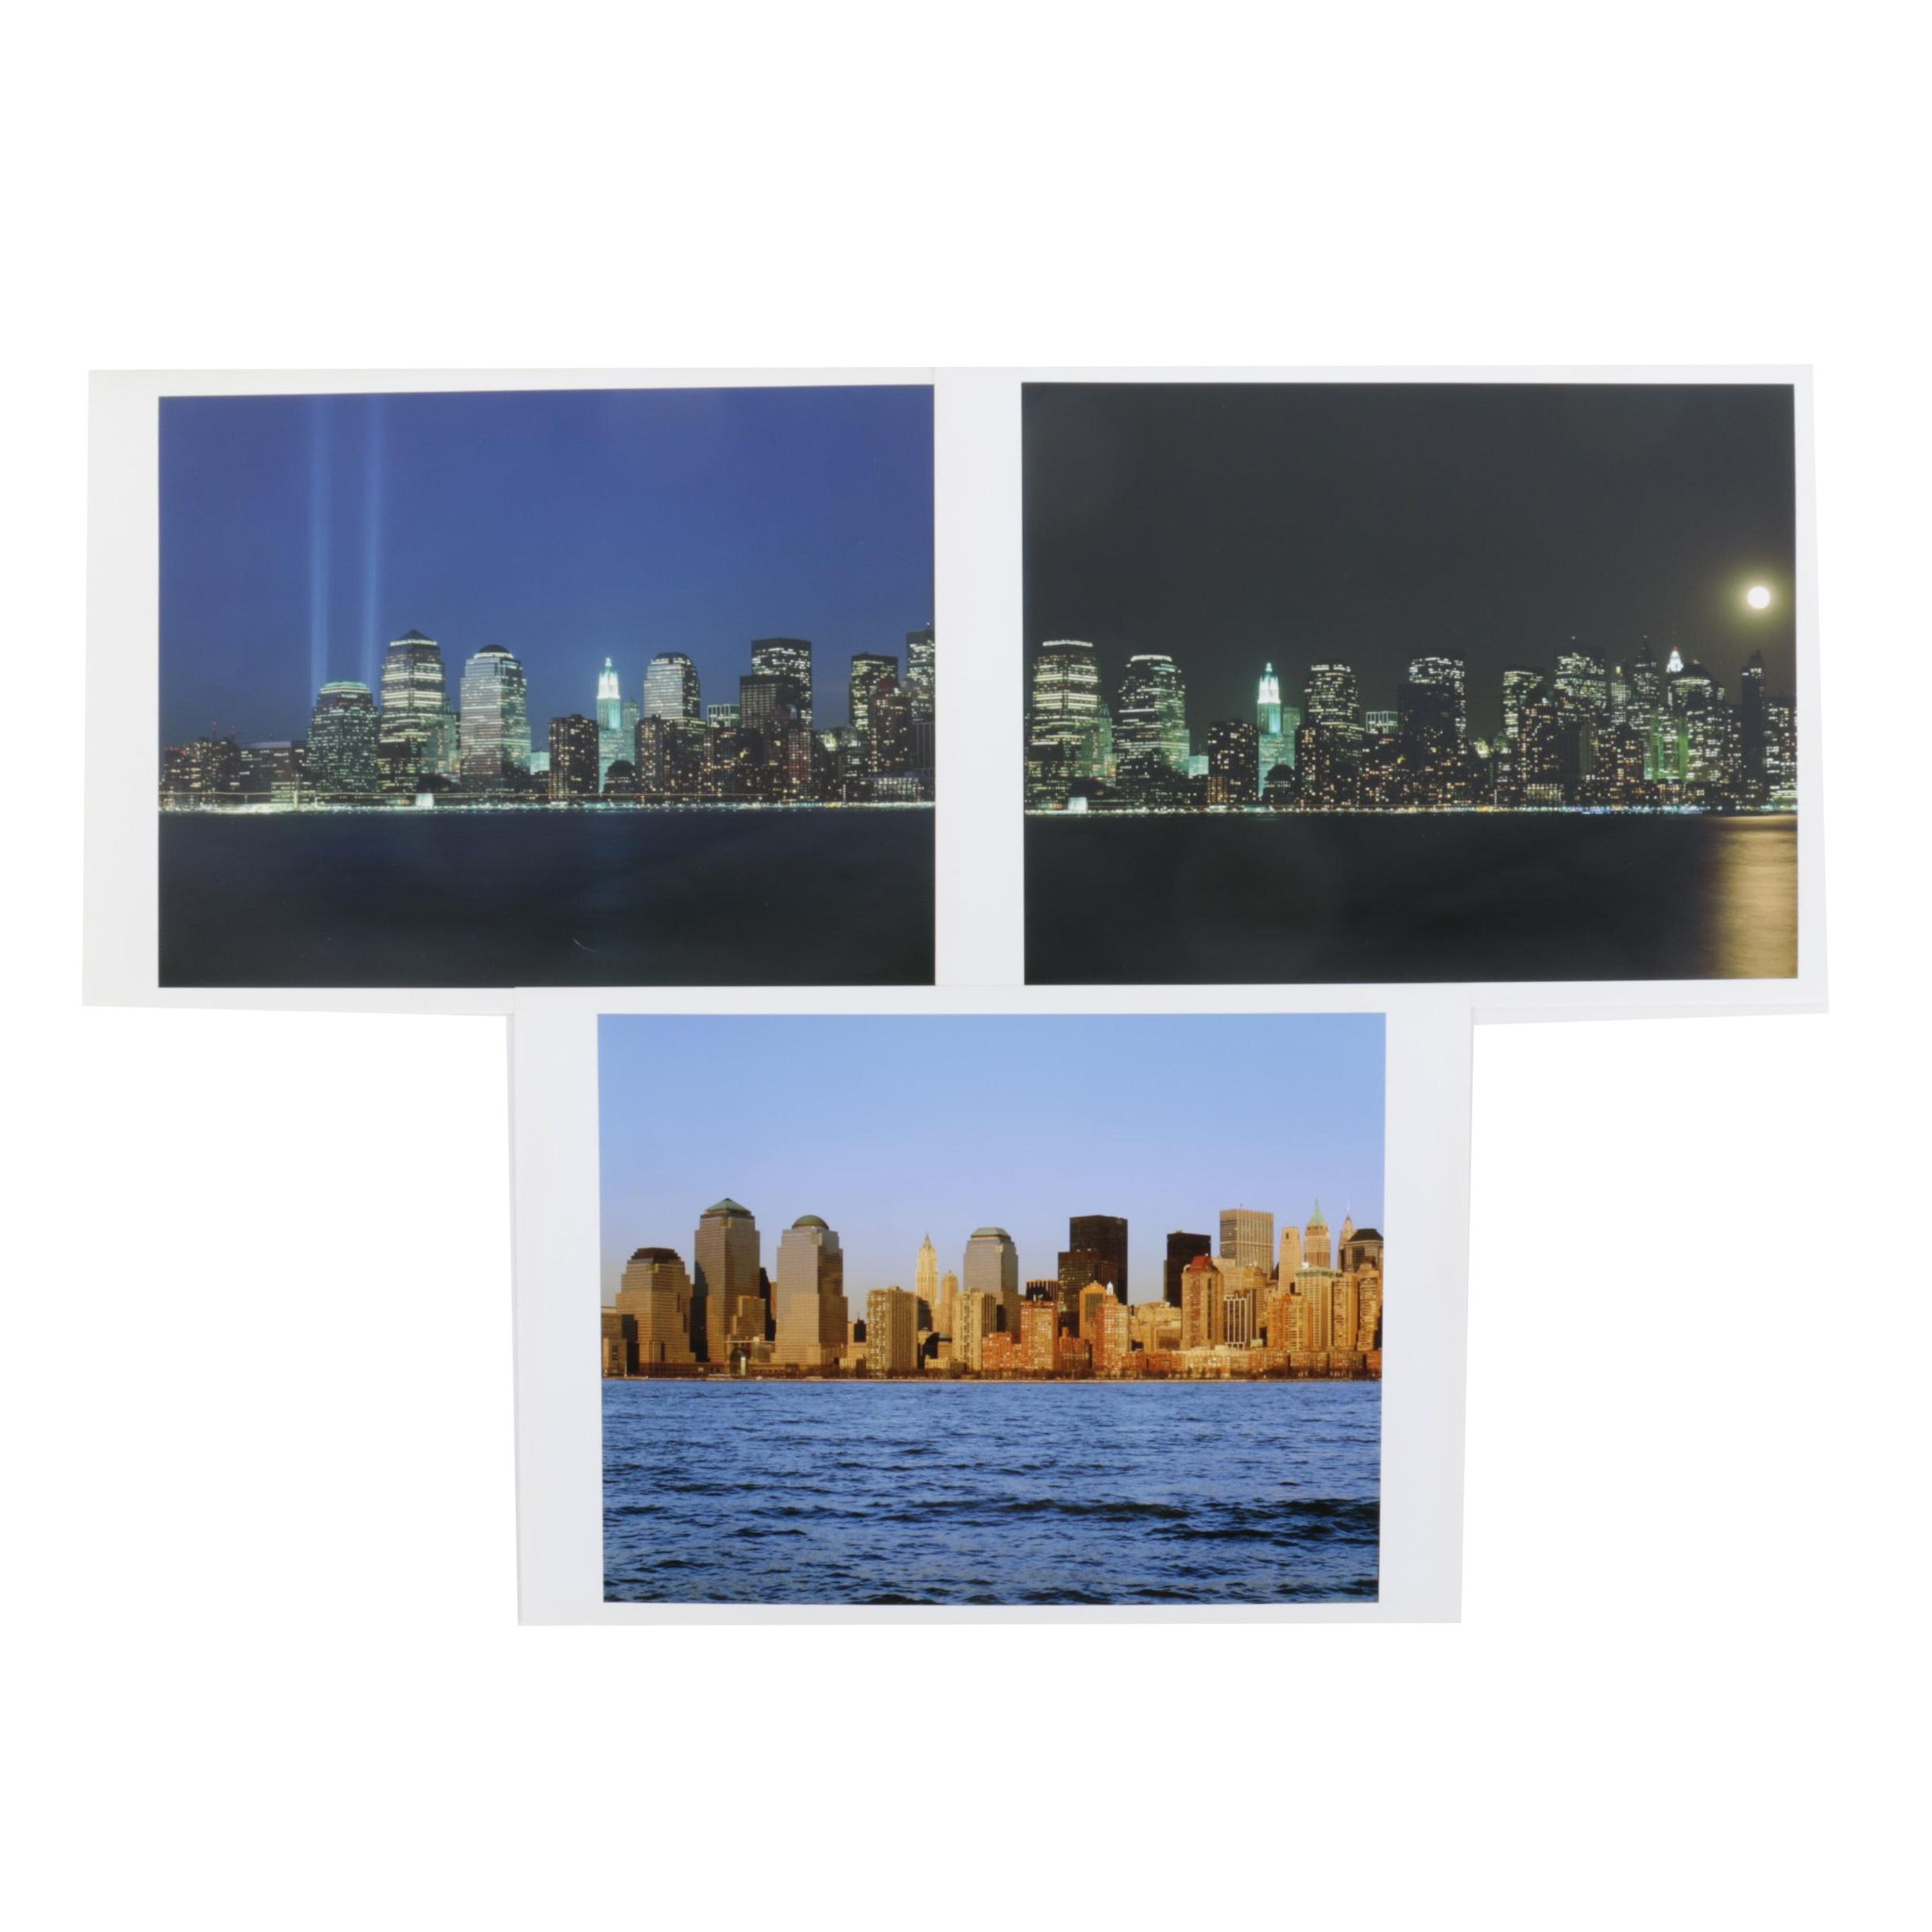 Digital Photographs of New York Skyline